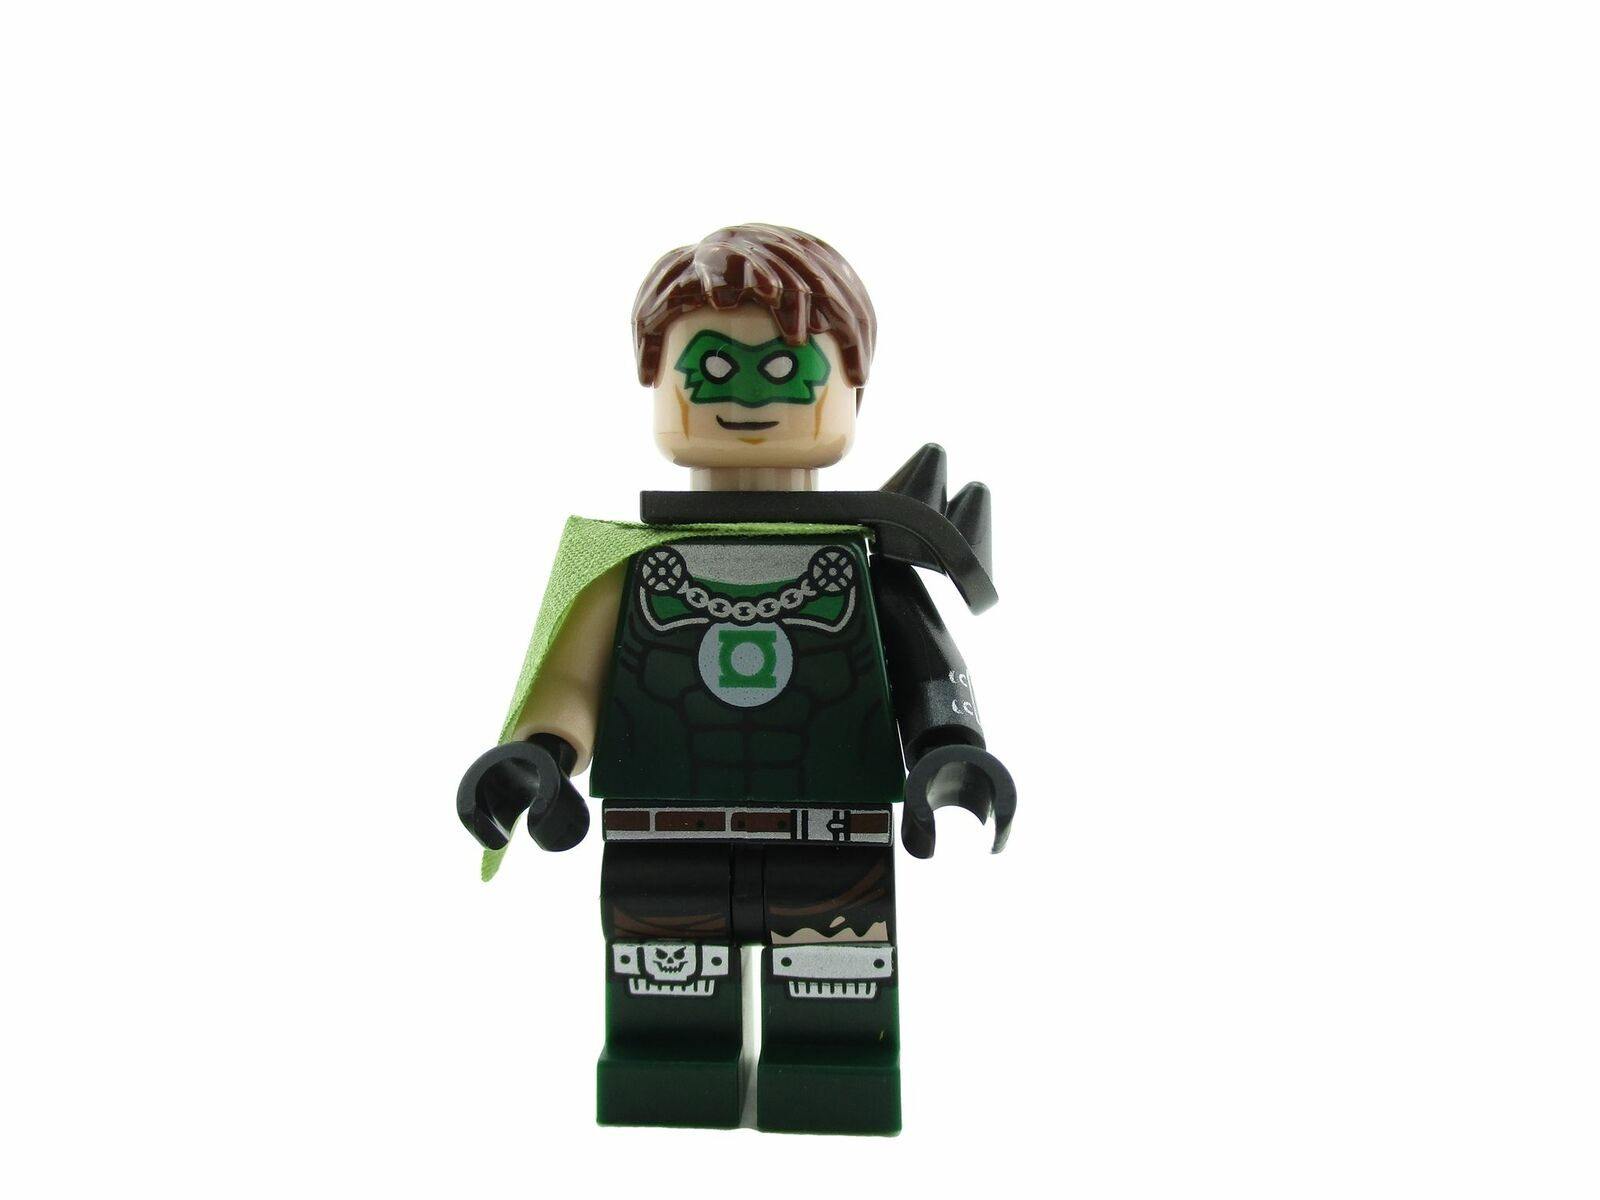 Lego The Lego Movie 2 Batman And Green Lantern Minifigures 70836 70840 For Sale Online Ebay